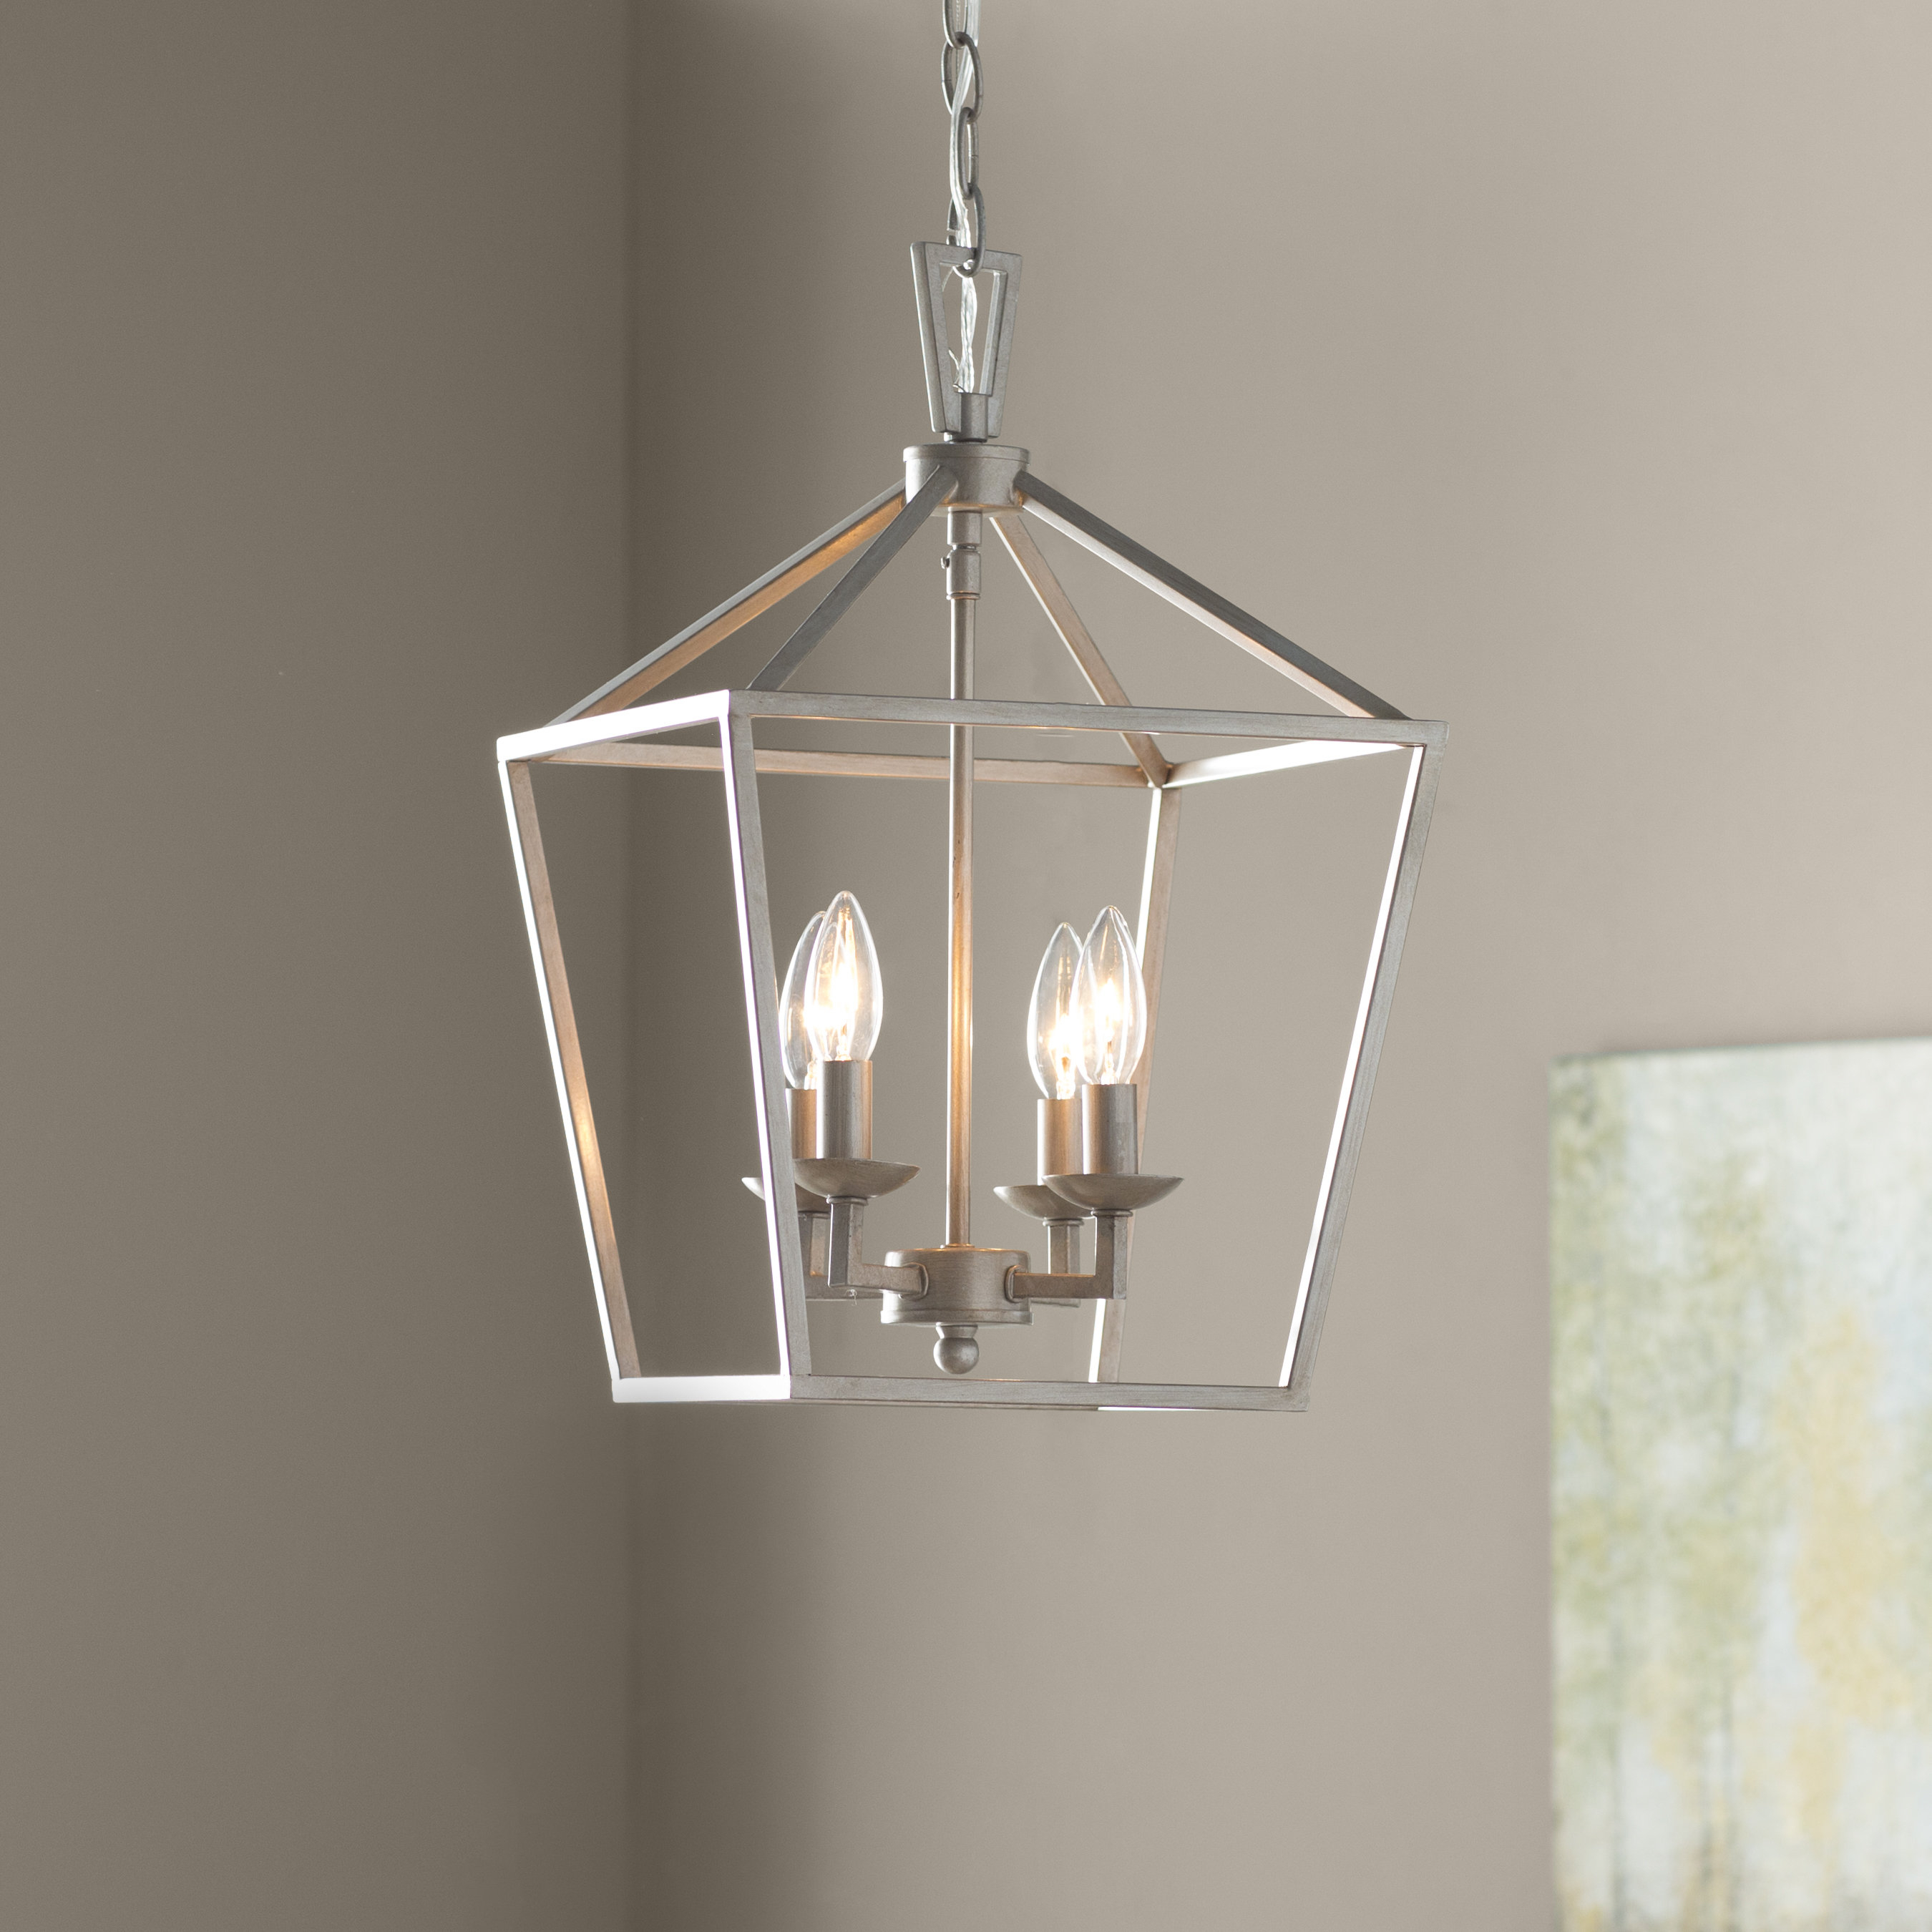 Farmhouse Kitchen Chandelier You'll Love In 2019 | Wayfair Inside Millbrook 5 Light Shaded Chandeliers (View 15 of 30)